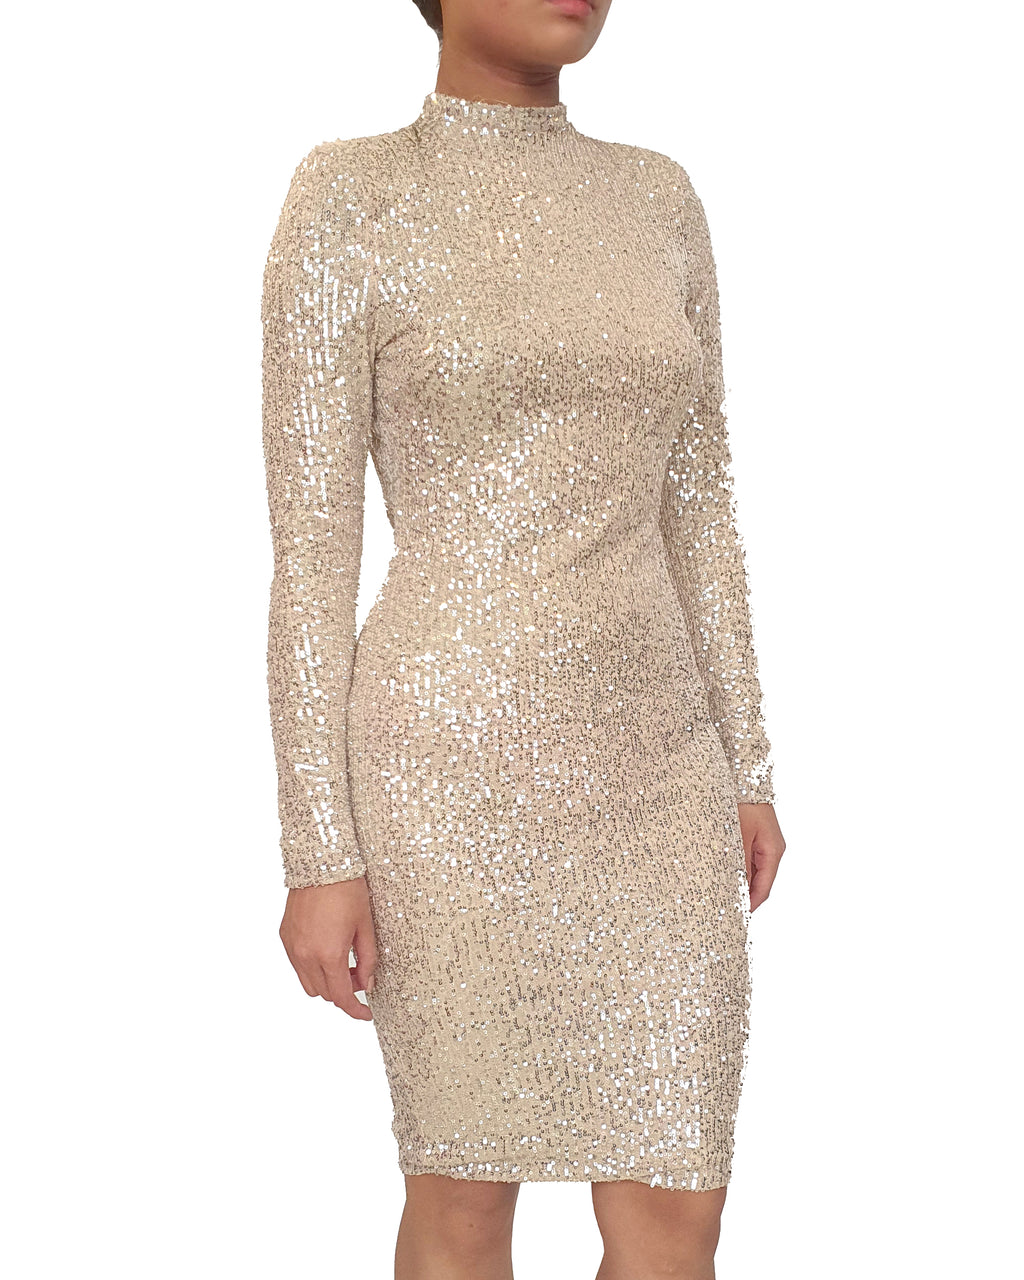 Champagne Gold Long Sleeve Dress